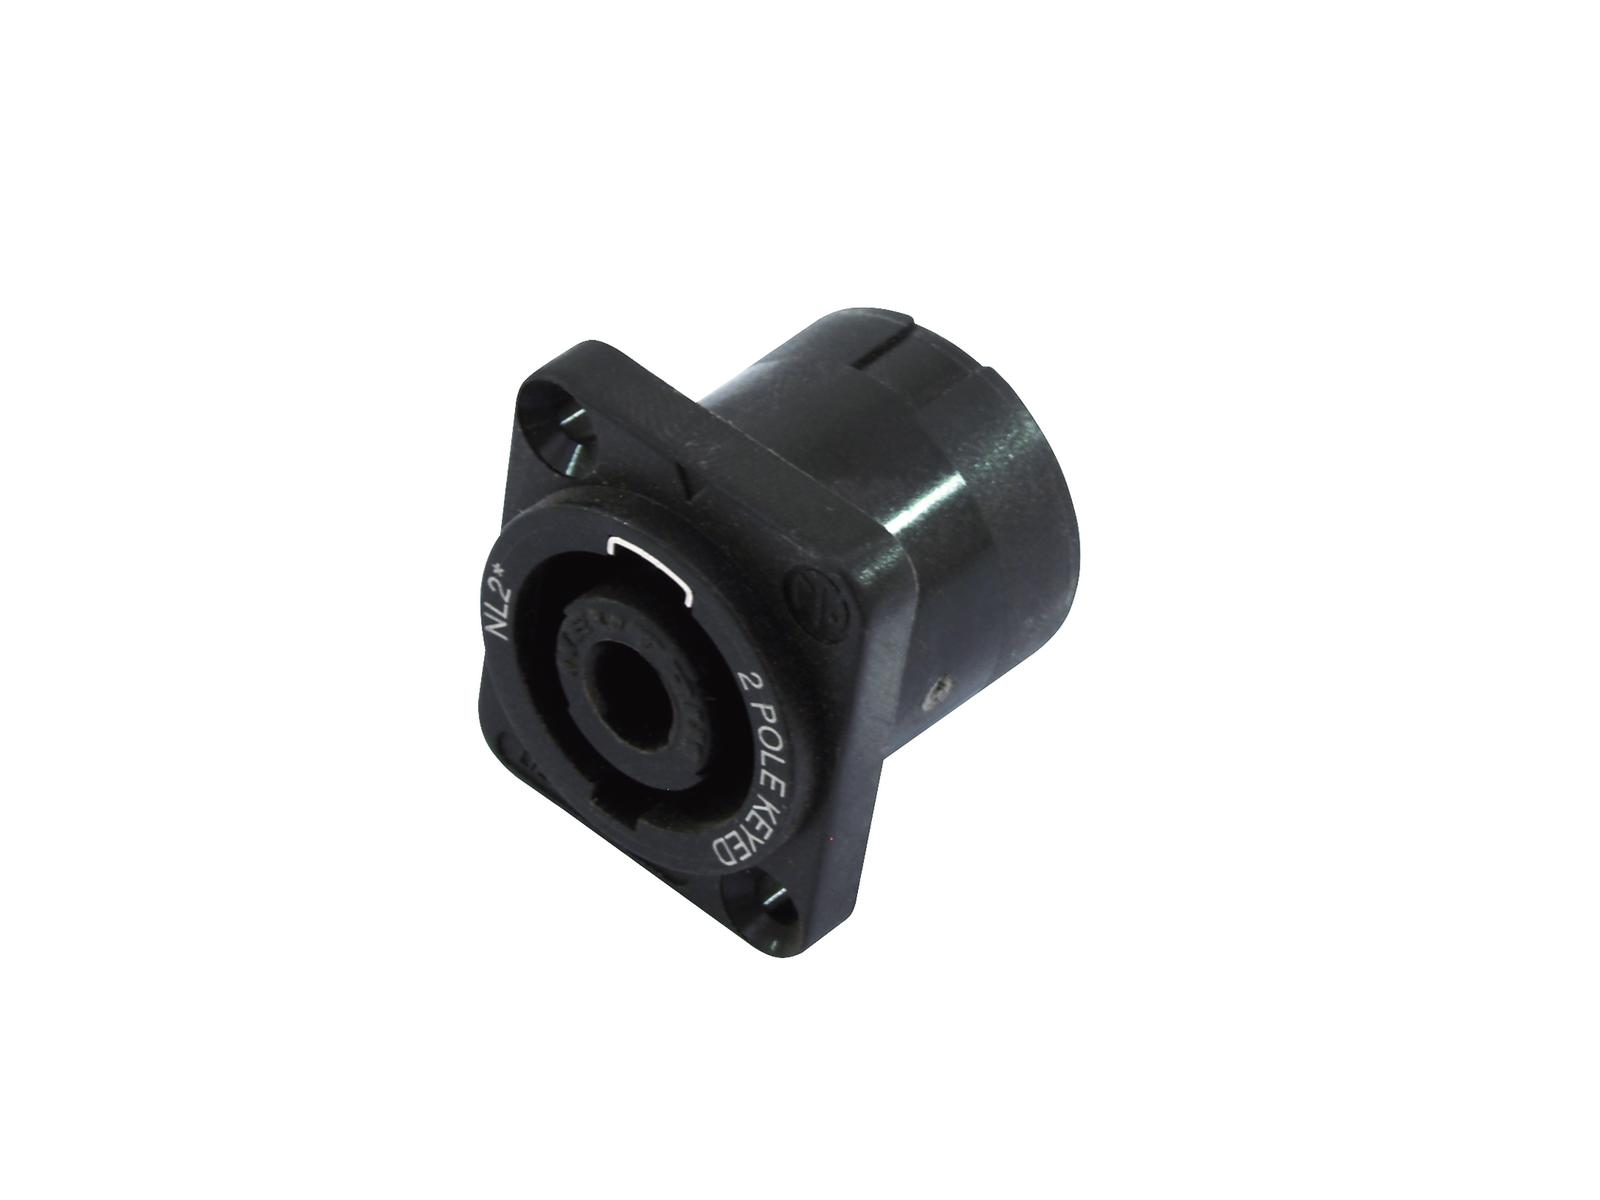 NEUTRIK Speakon zoccolo di montaggio 2pin NL2MP